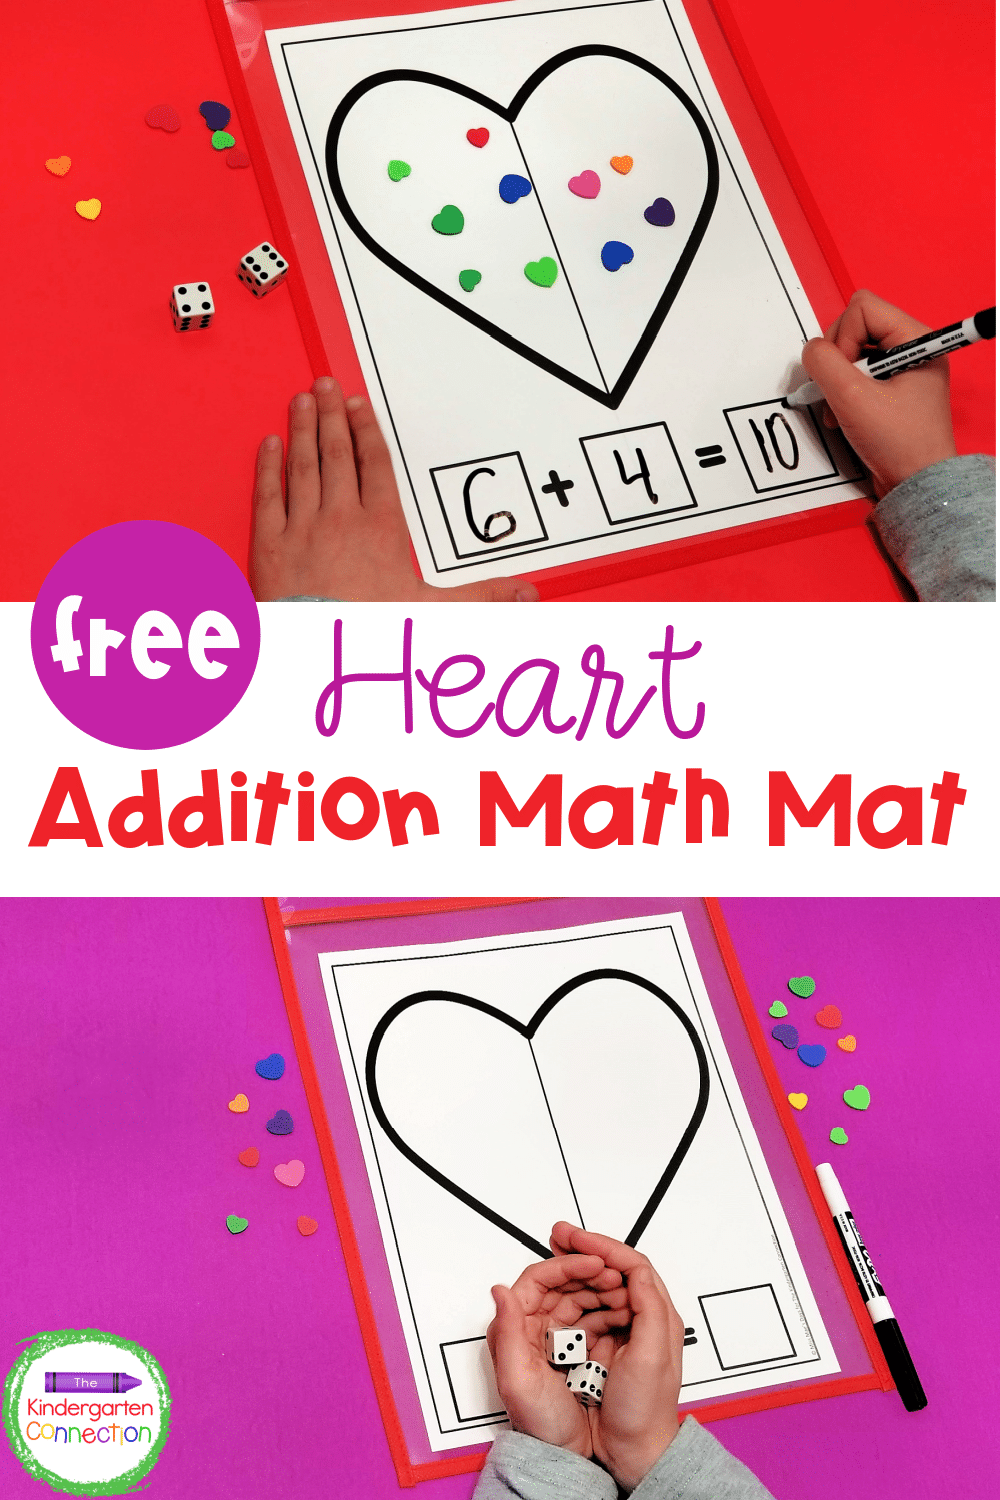 Add a fun, seasonal twist to your math centers with this free Valentine Heart Addition Math Mat printable where students can count and add!